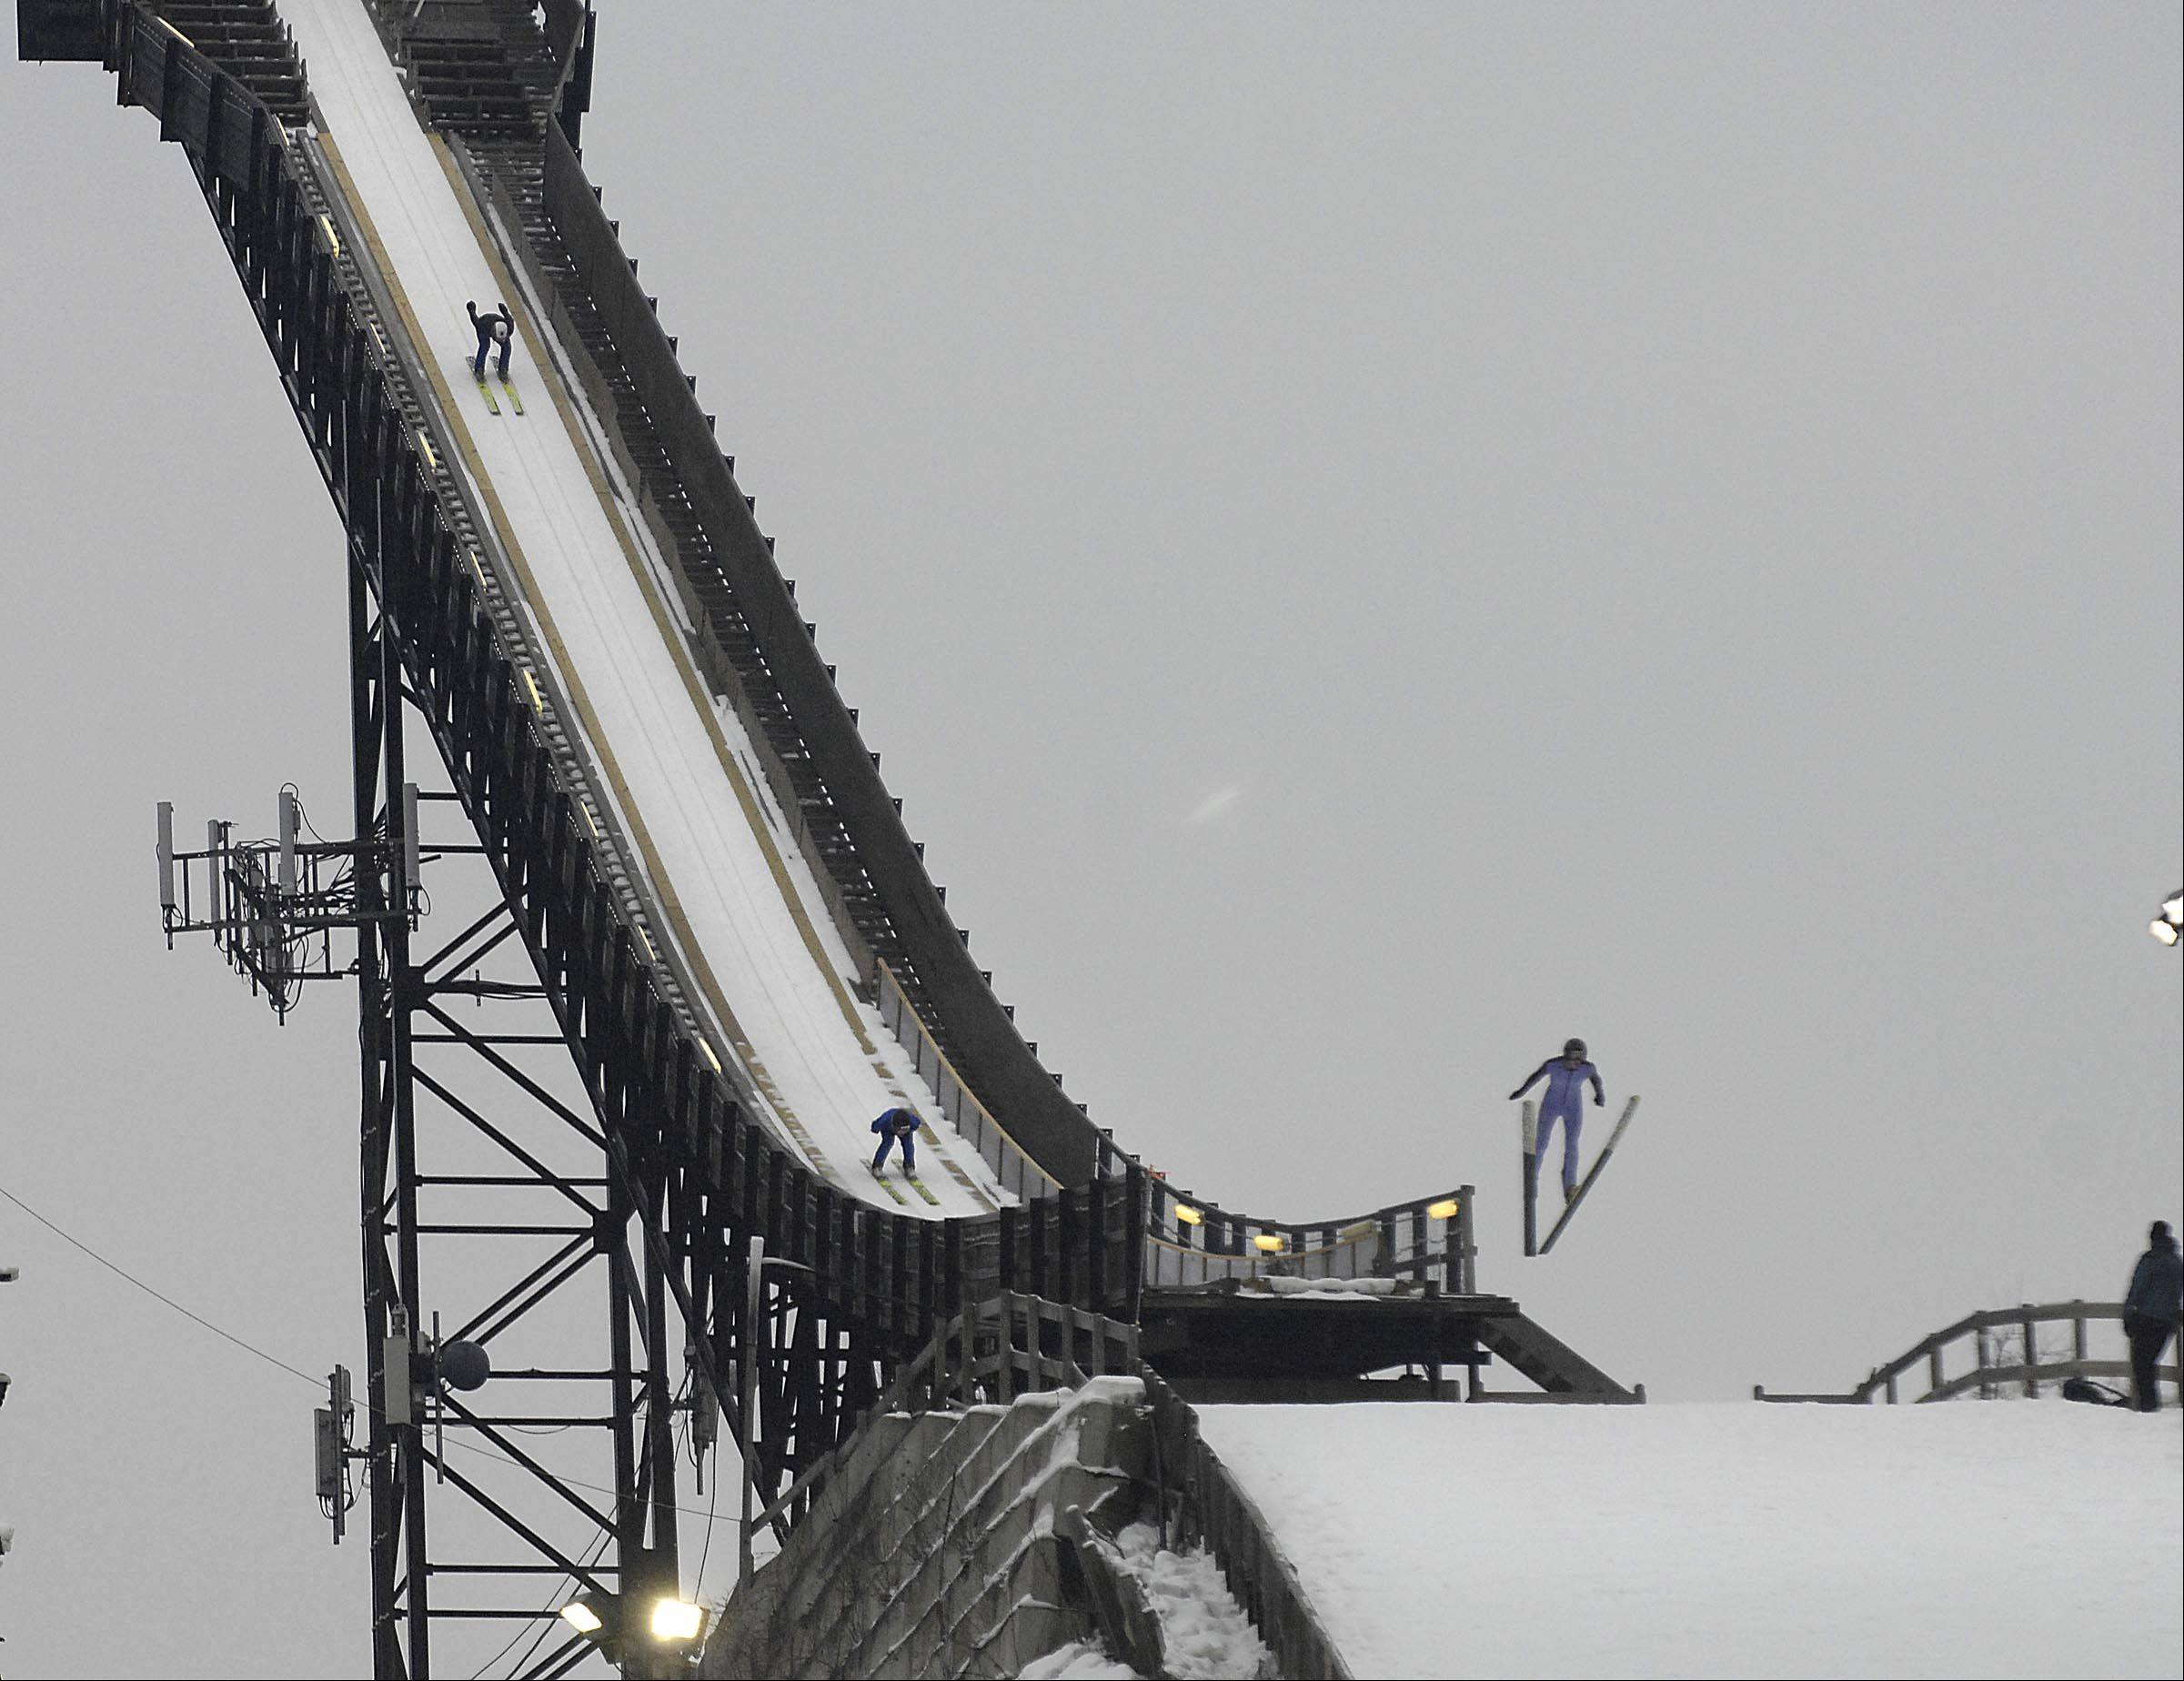 Weather doesn't deter 'hardy' ski jumping fans